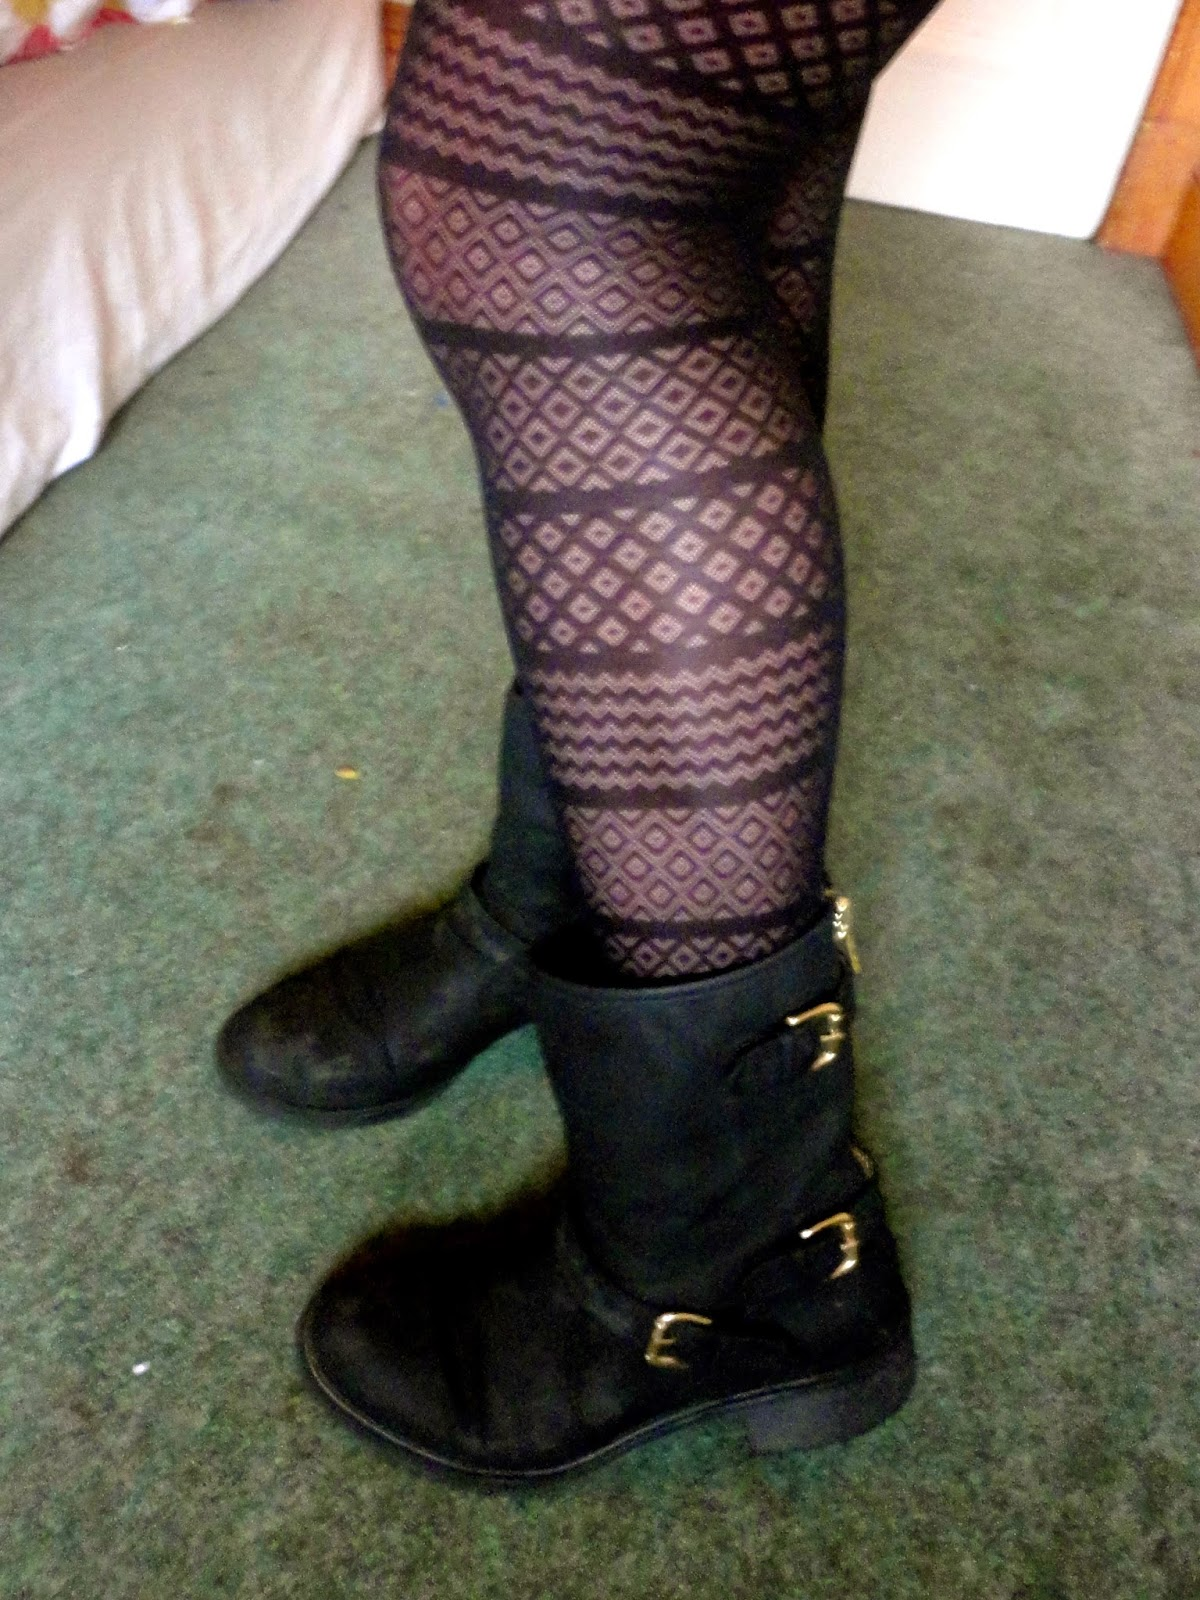 Outfit details of patterned tights and black biker boots